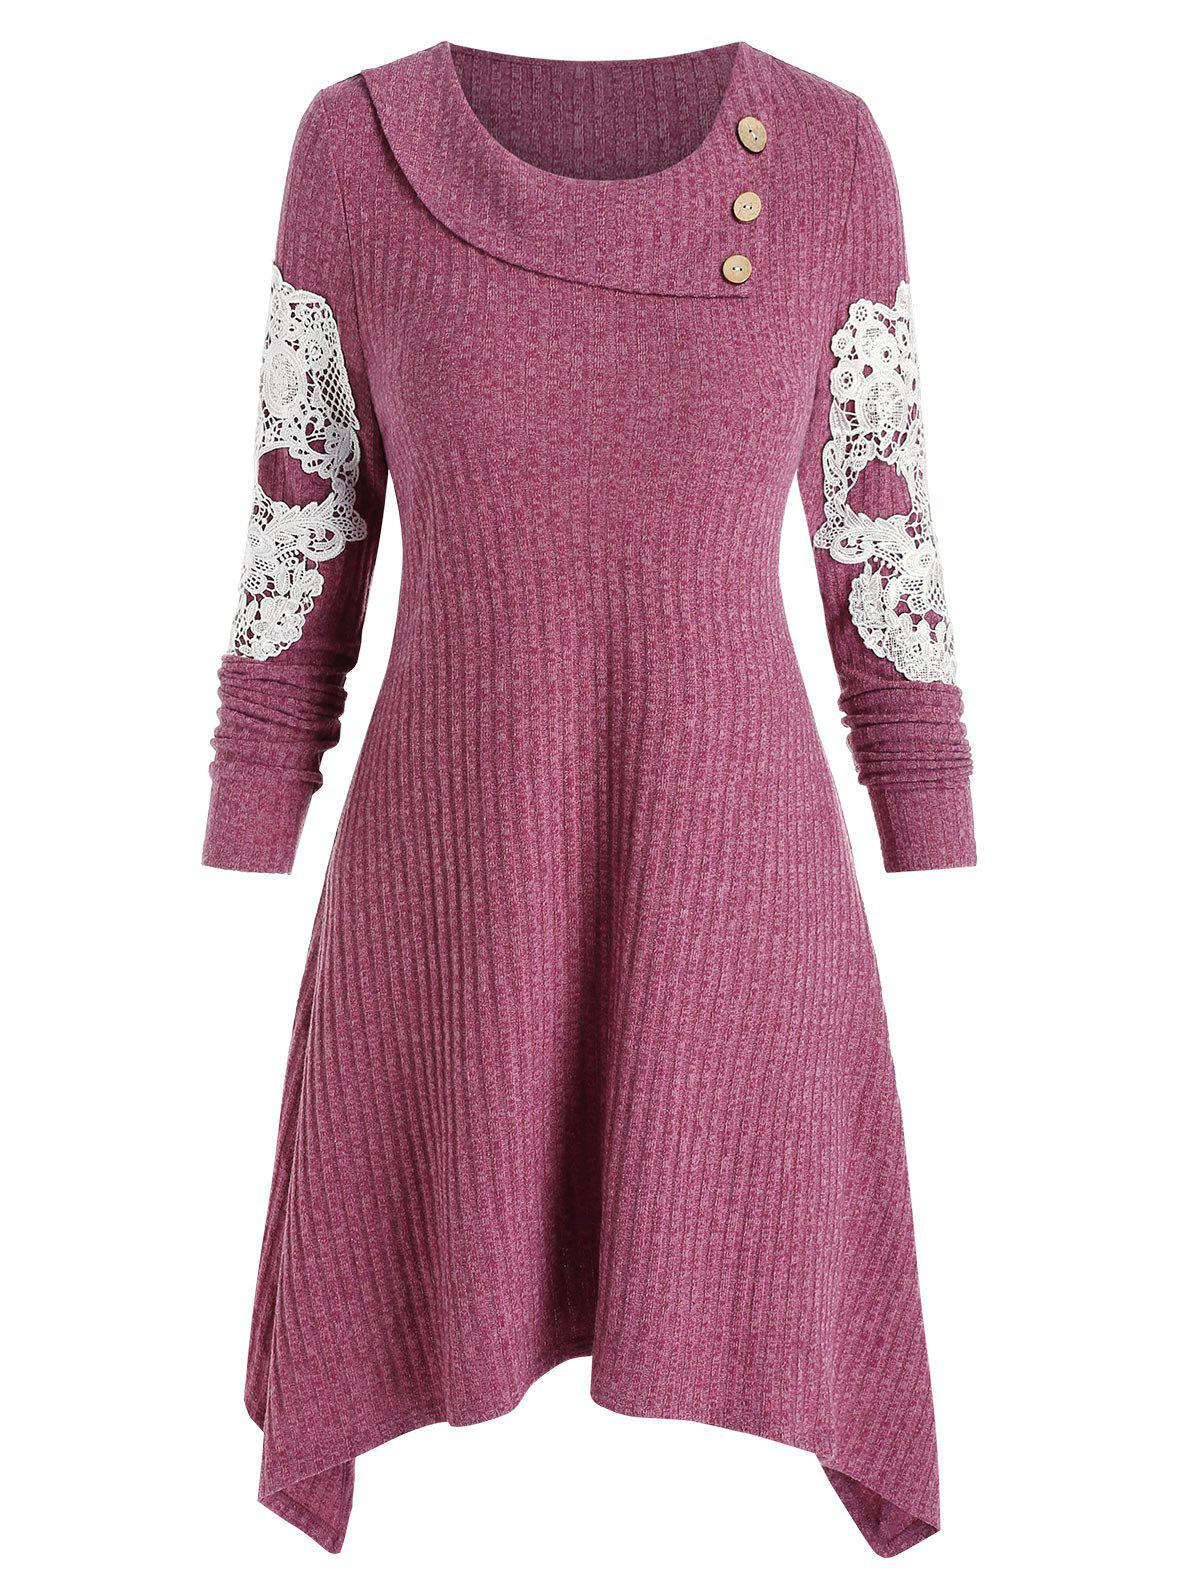 Applique Embroidered Skull Buttons Knitted Dress - LIPSTICK PINK M